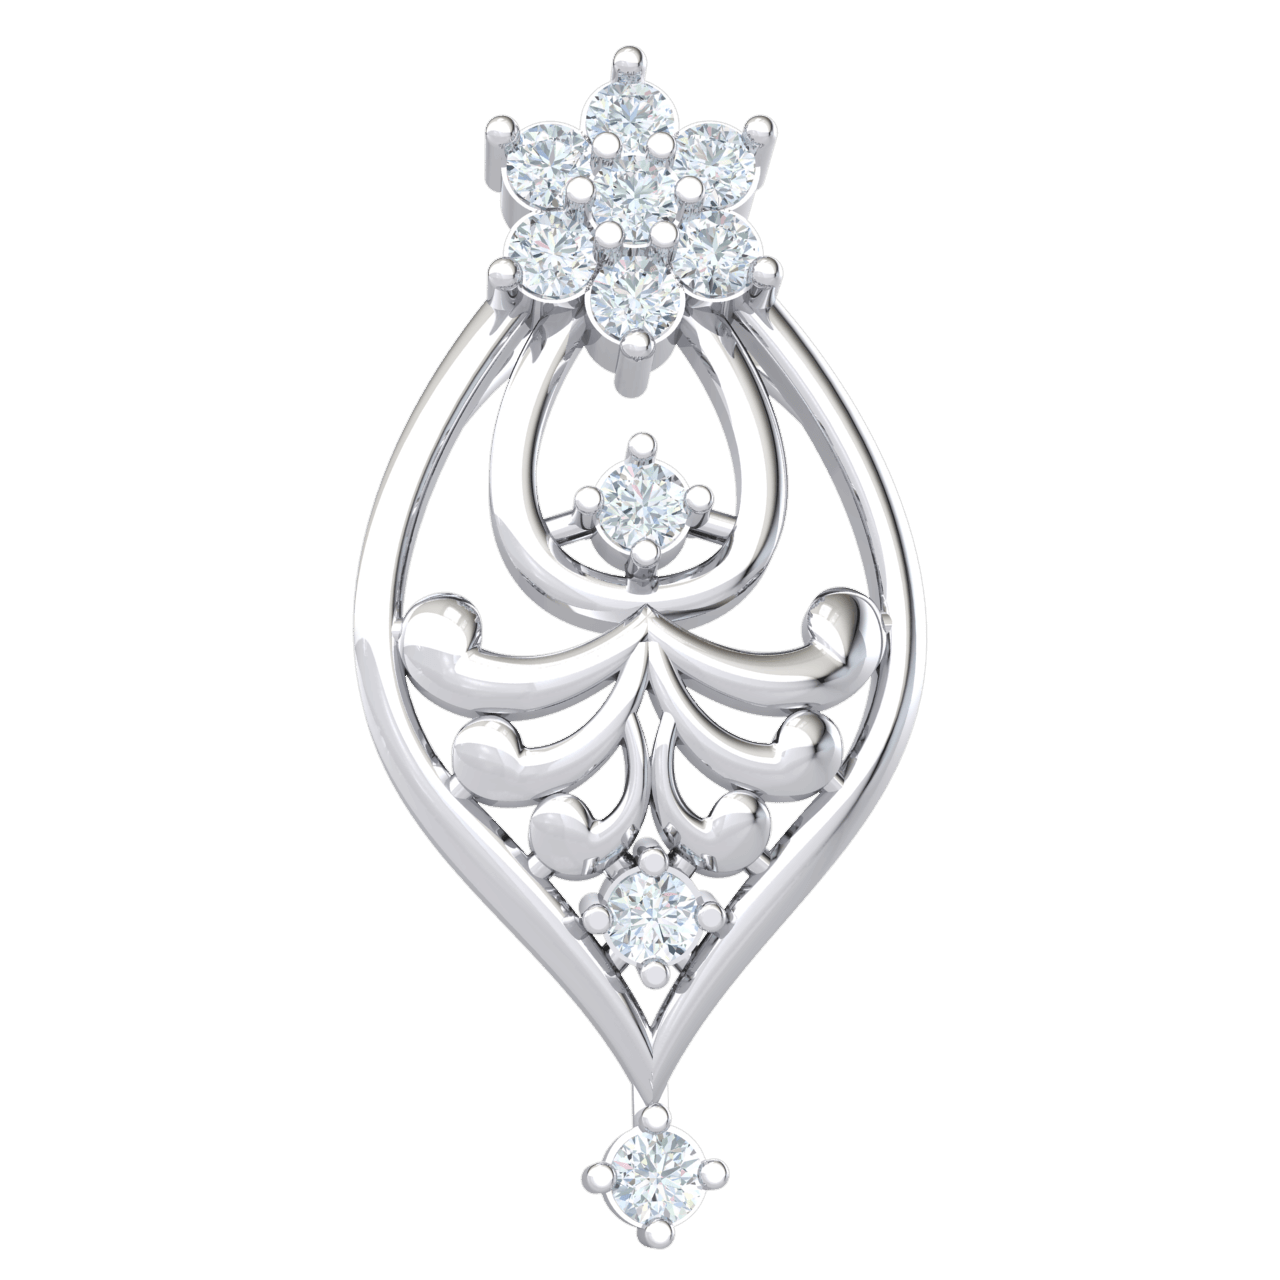 Dazzling 7 Stone White Diamond Pendant Set On A Charming Array Of Real And Diamonds 0.15 Ct IJ SI2 and 14 kt Gold